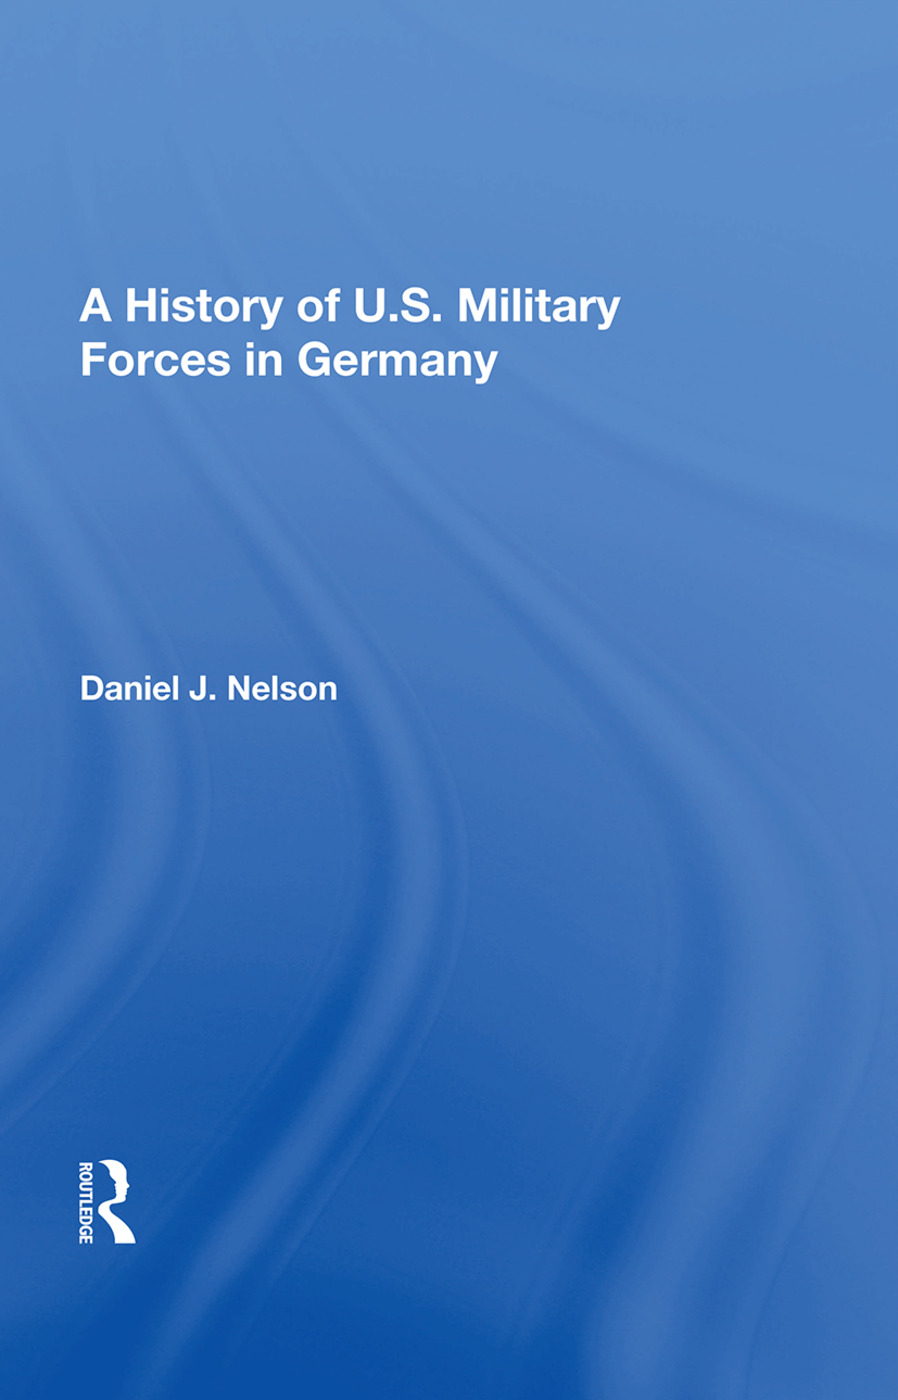 A History Of U.s. Military Forces In Germany book cover